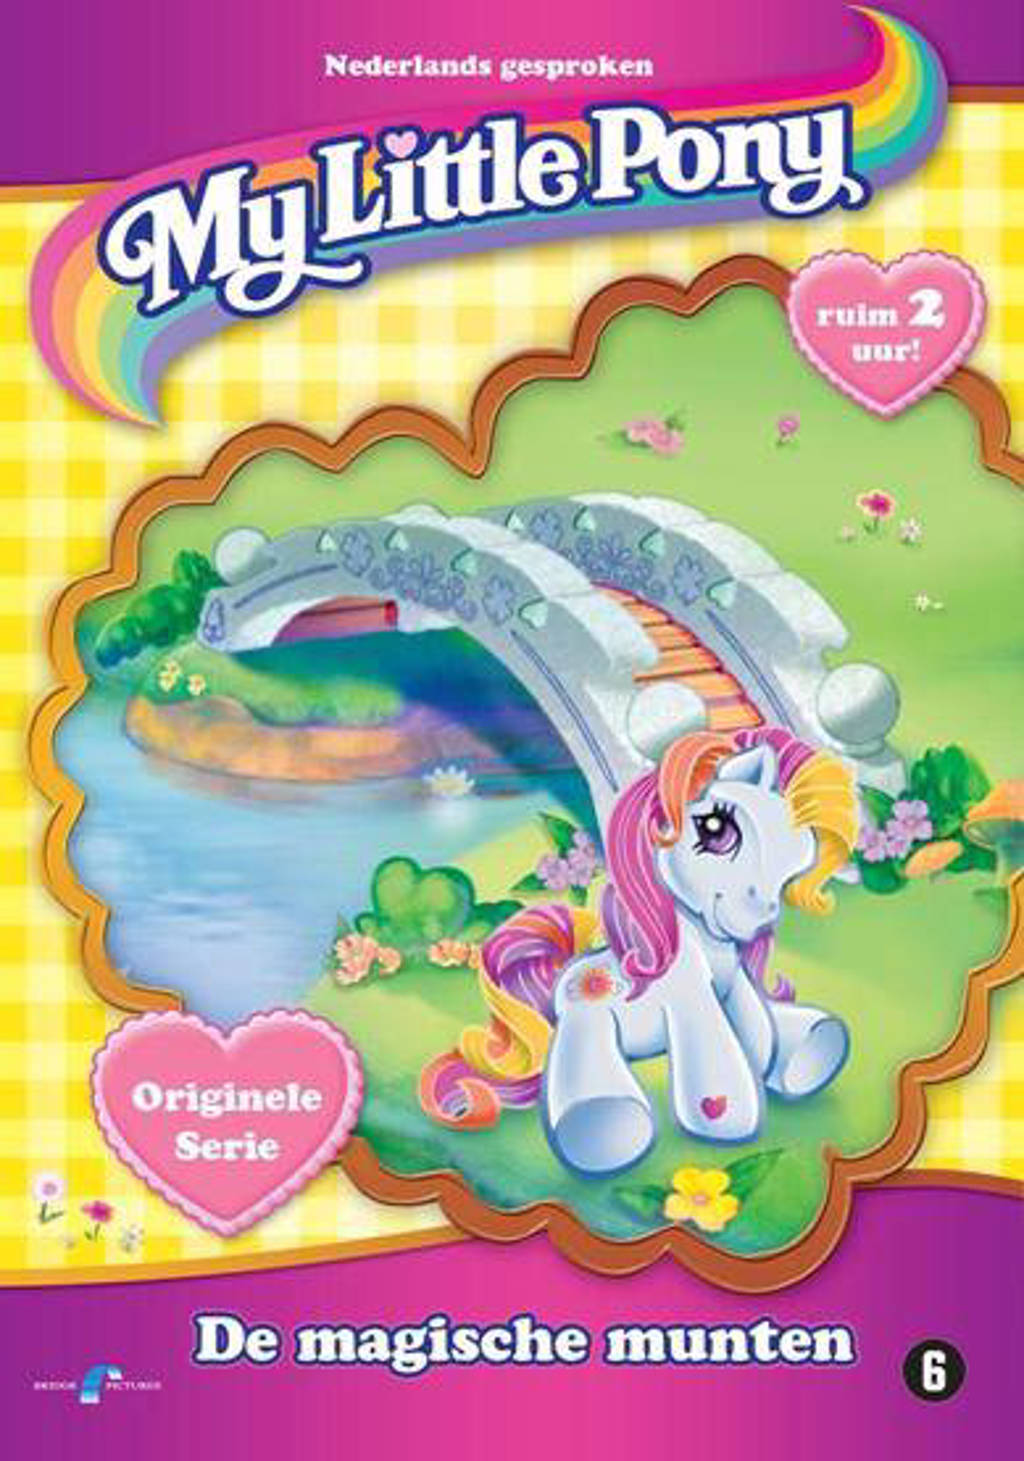 My little pony 1-de magische munten (DVD)